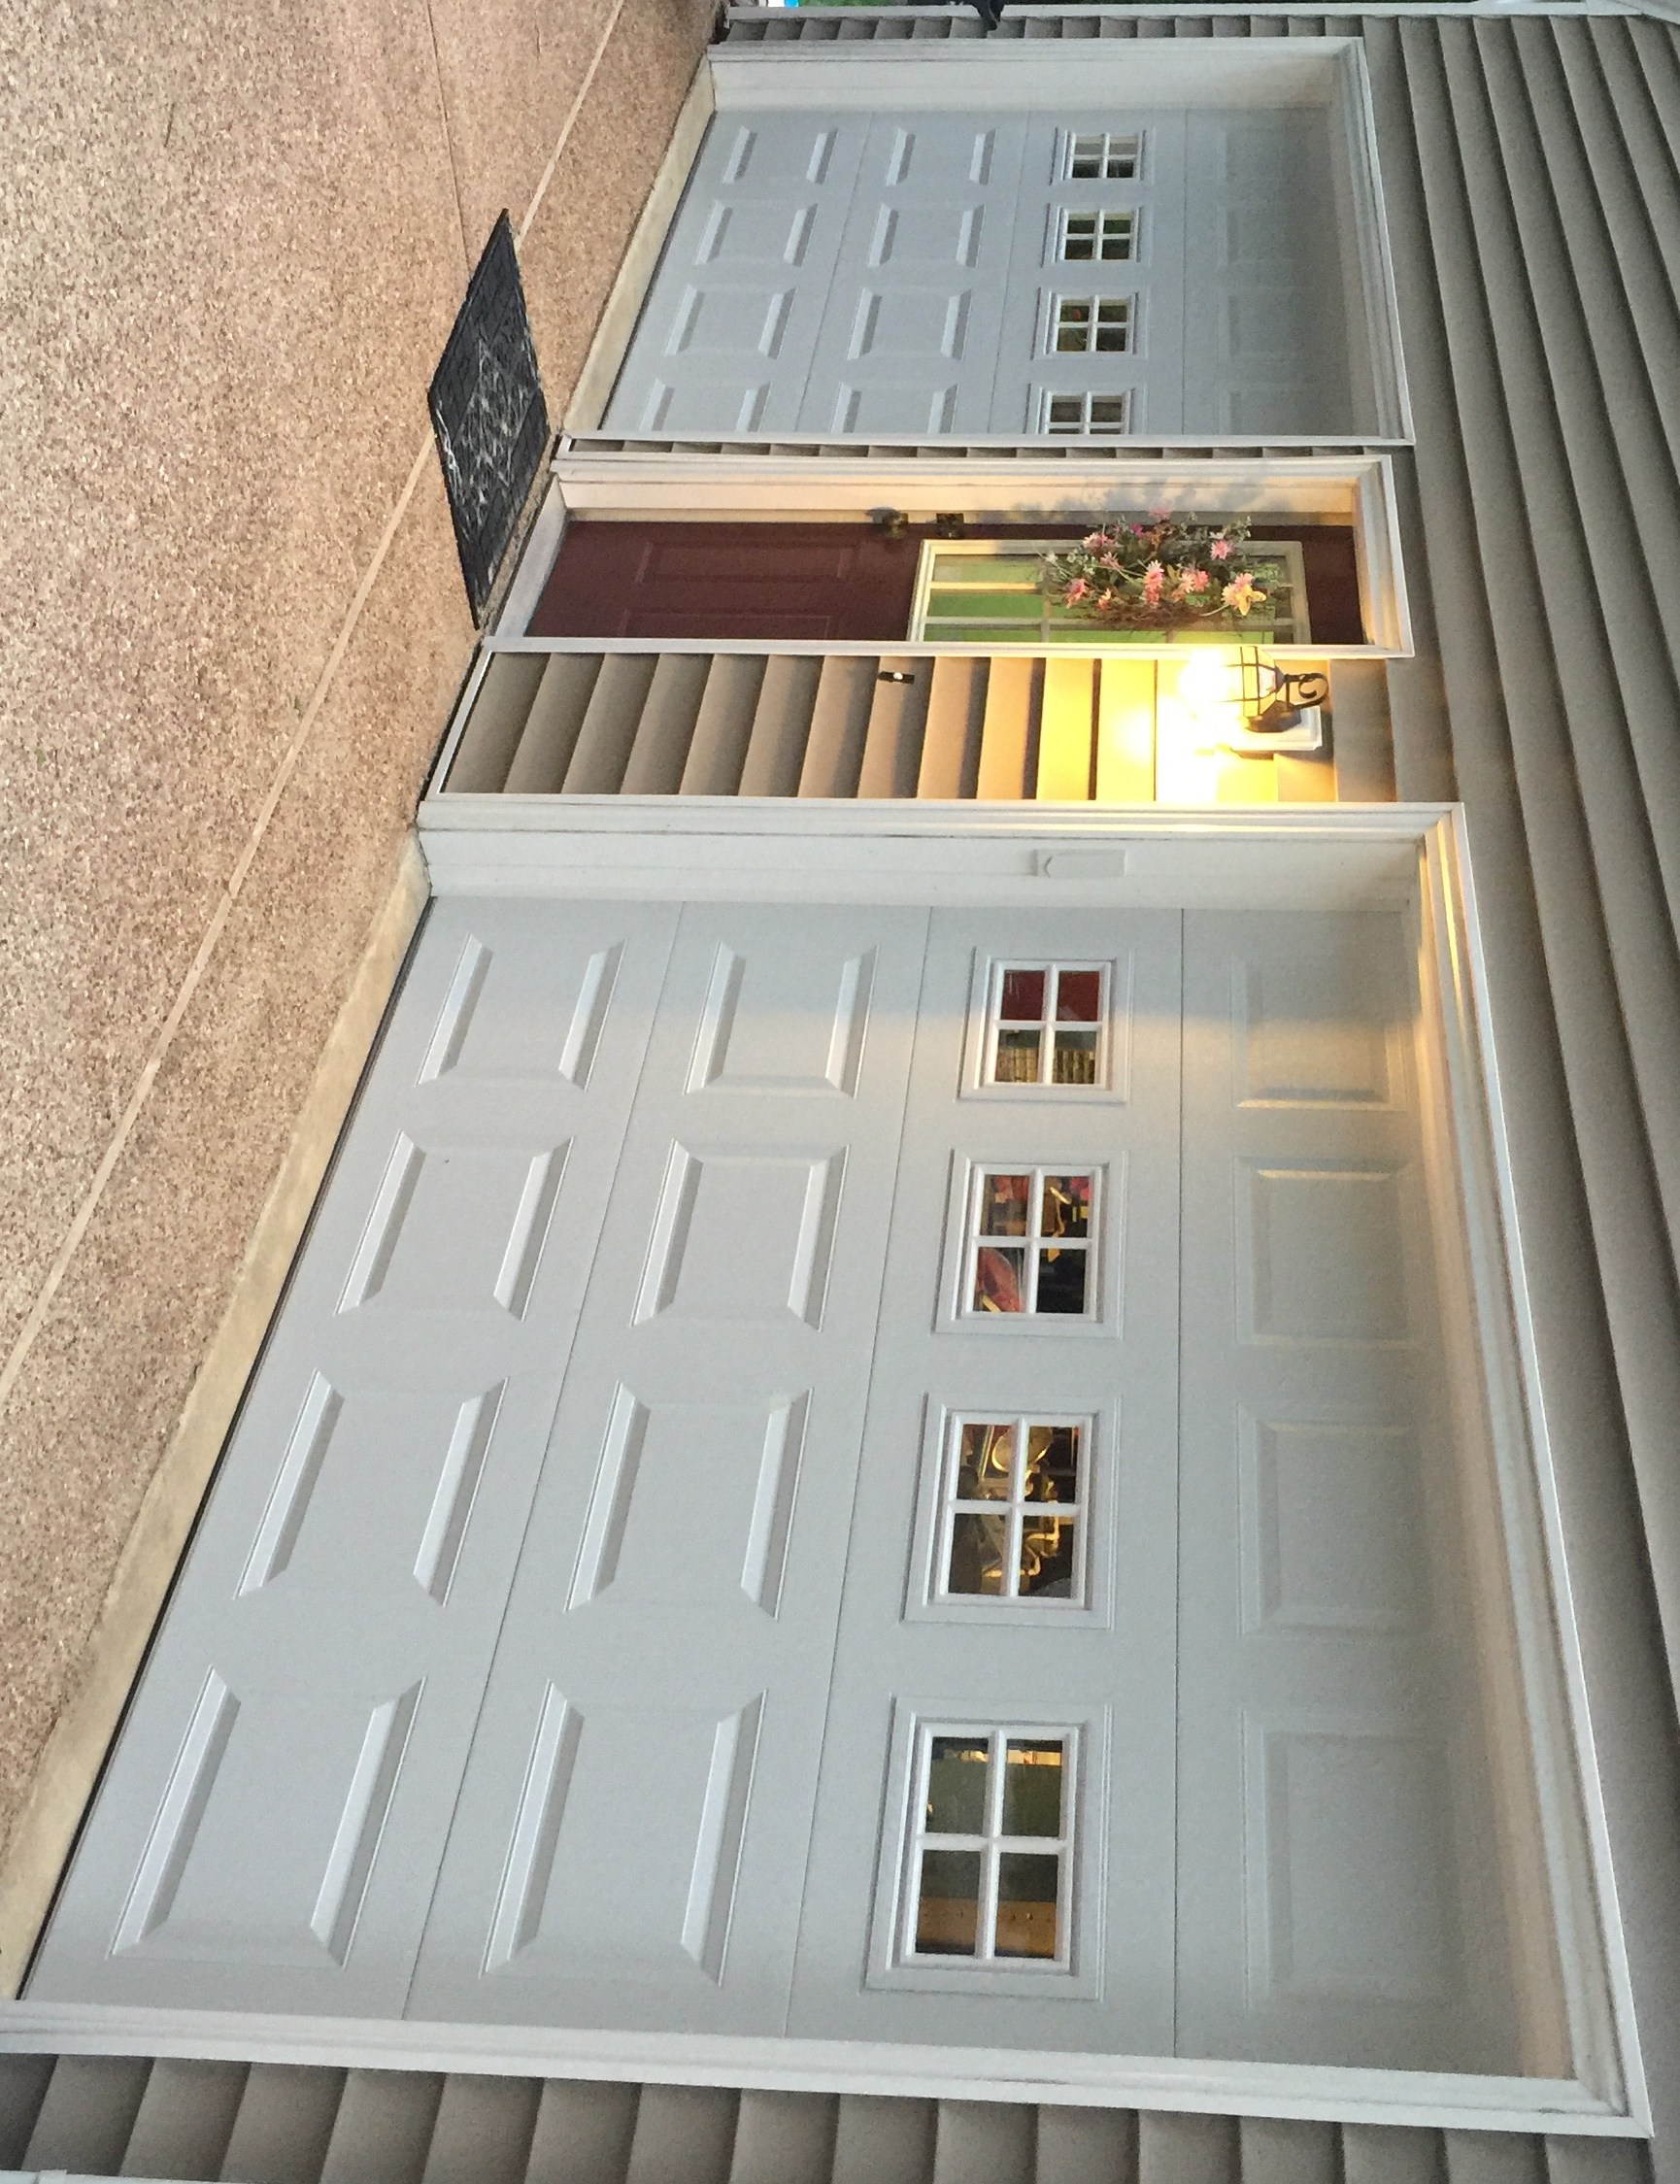 9x7 Garage Door Virginia Residential Garage Doors Interior And Exterior